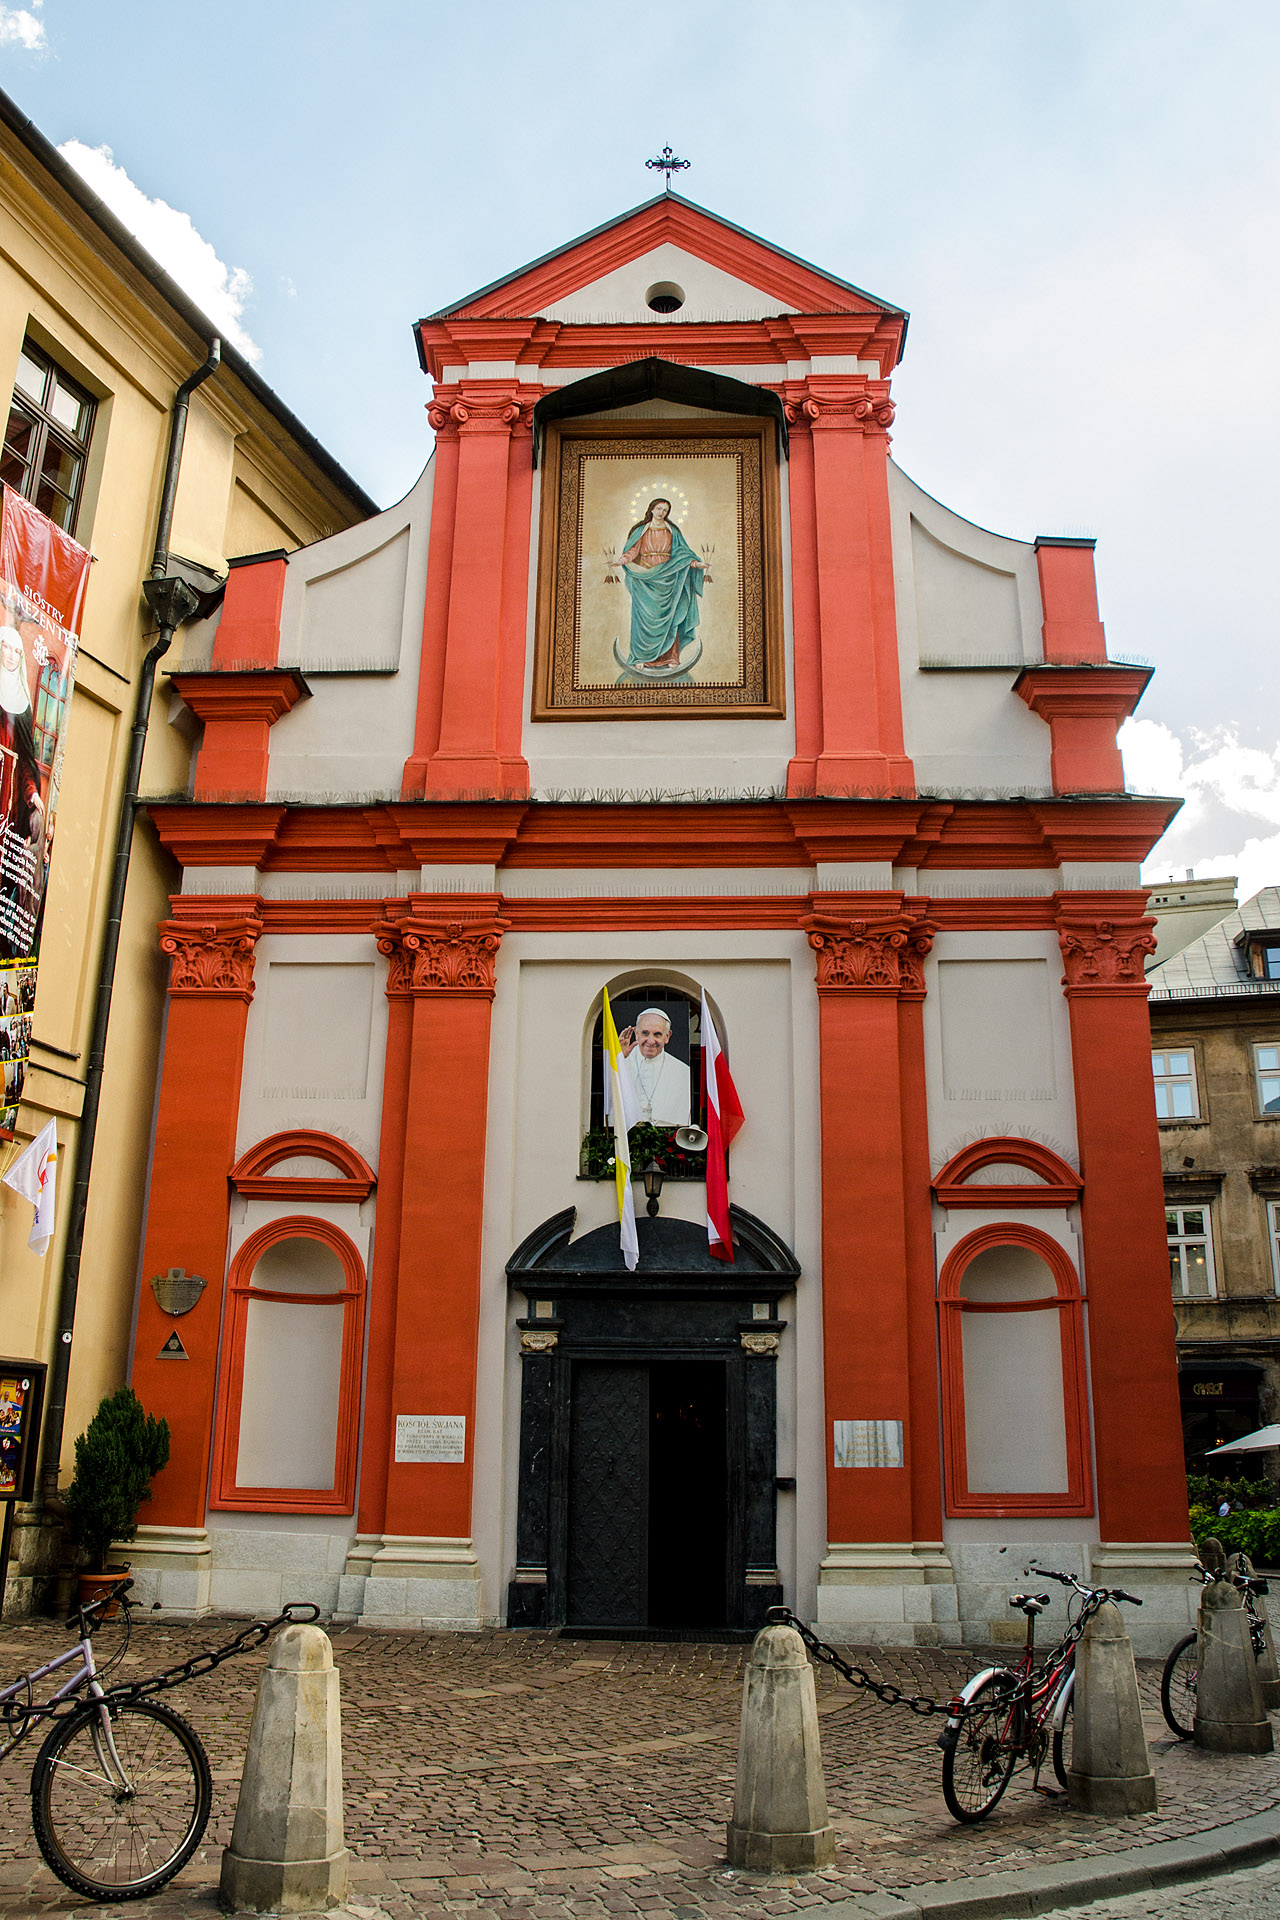 Church of St. John the Baptist and John the Evangelist